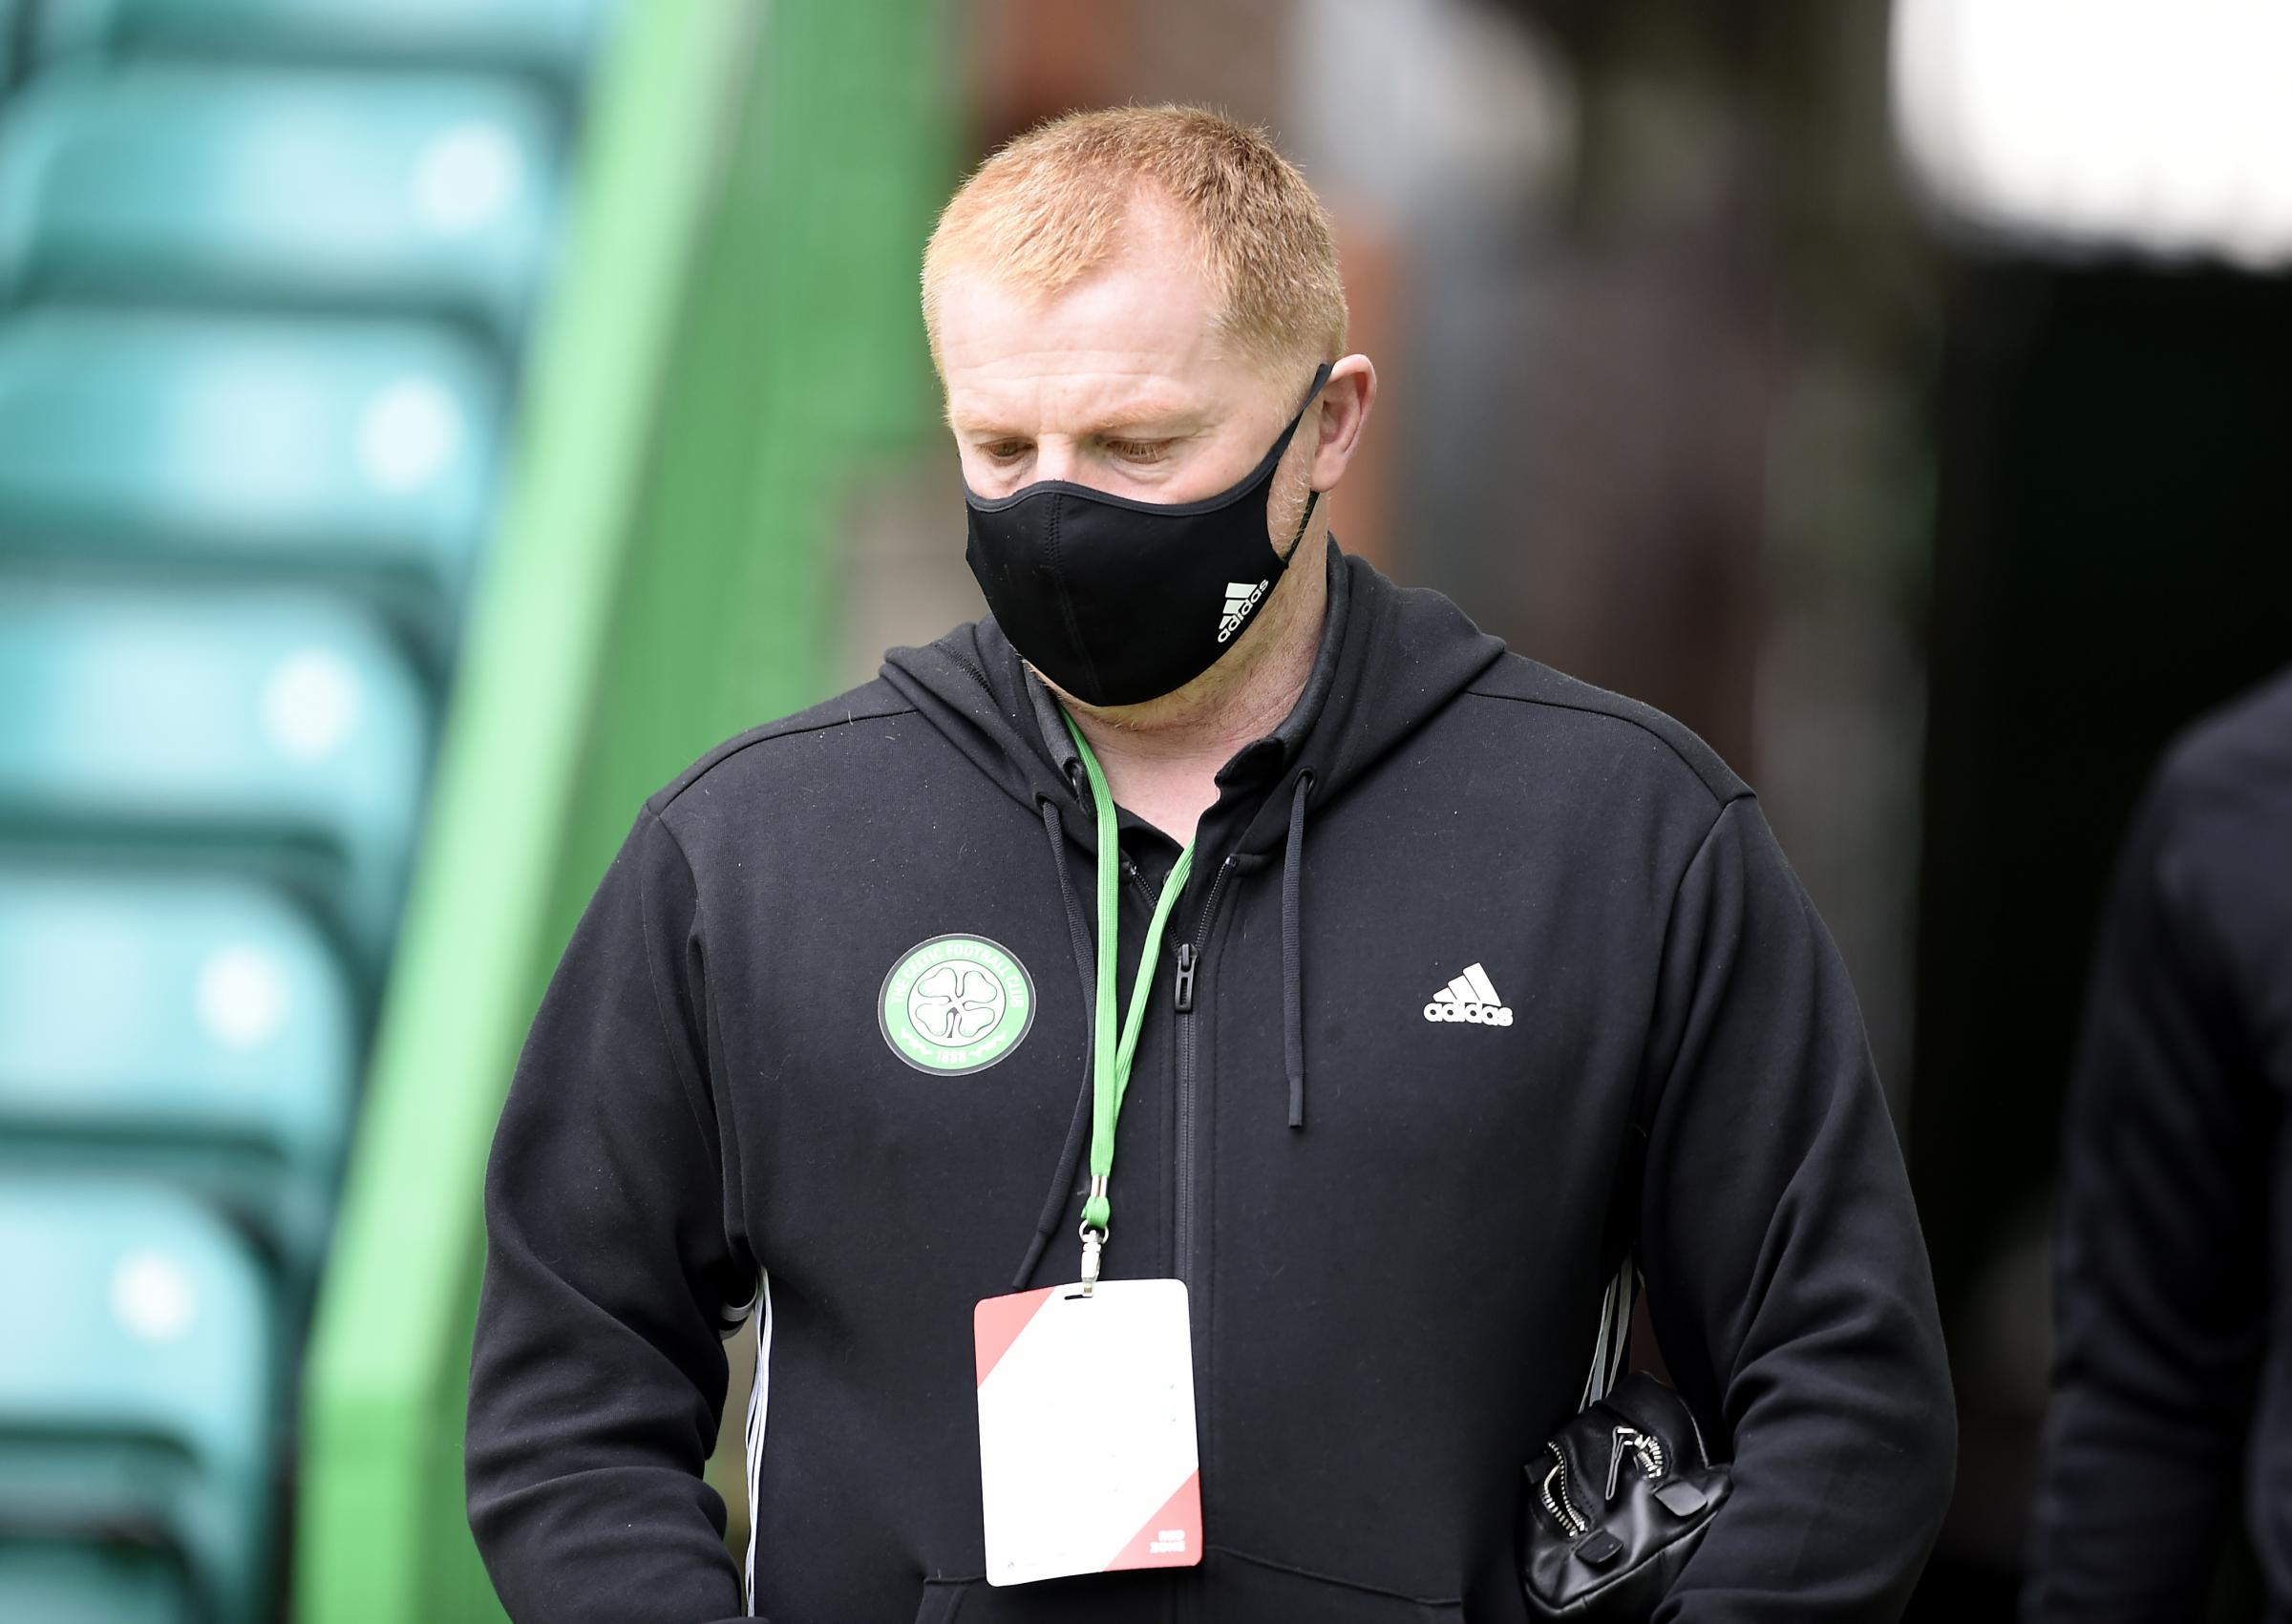 Celtic to play Riga or Tre Fiore in Europa League third qualifying round as Rangers, Aberdeen and Motherwell learn fate